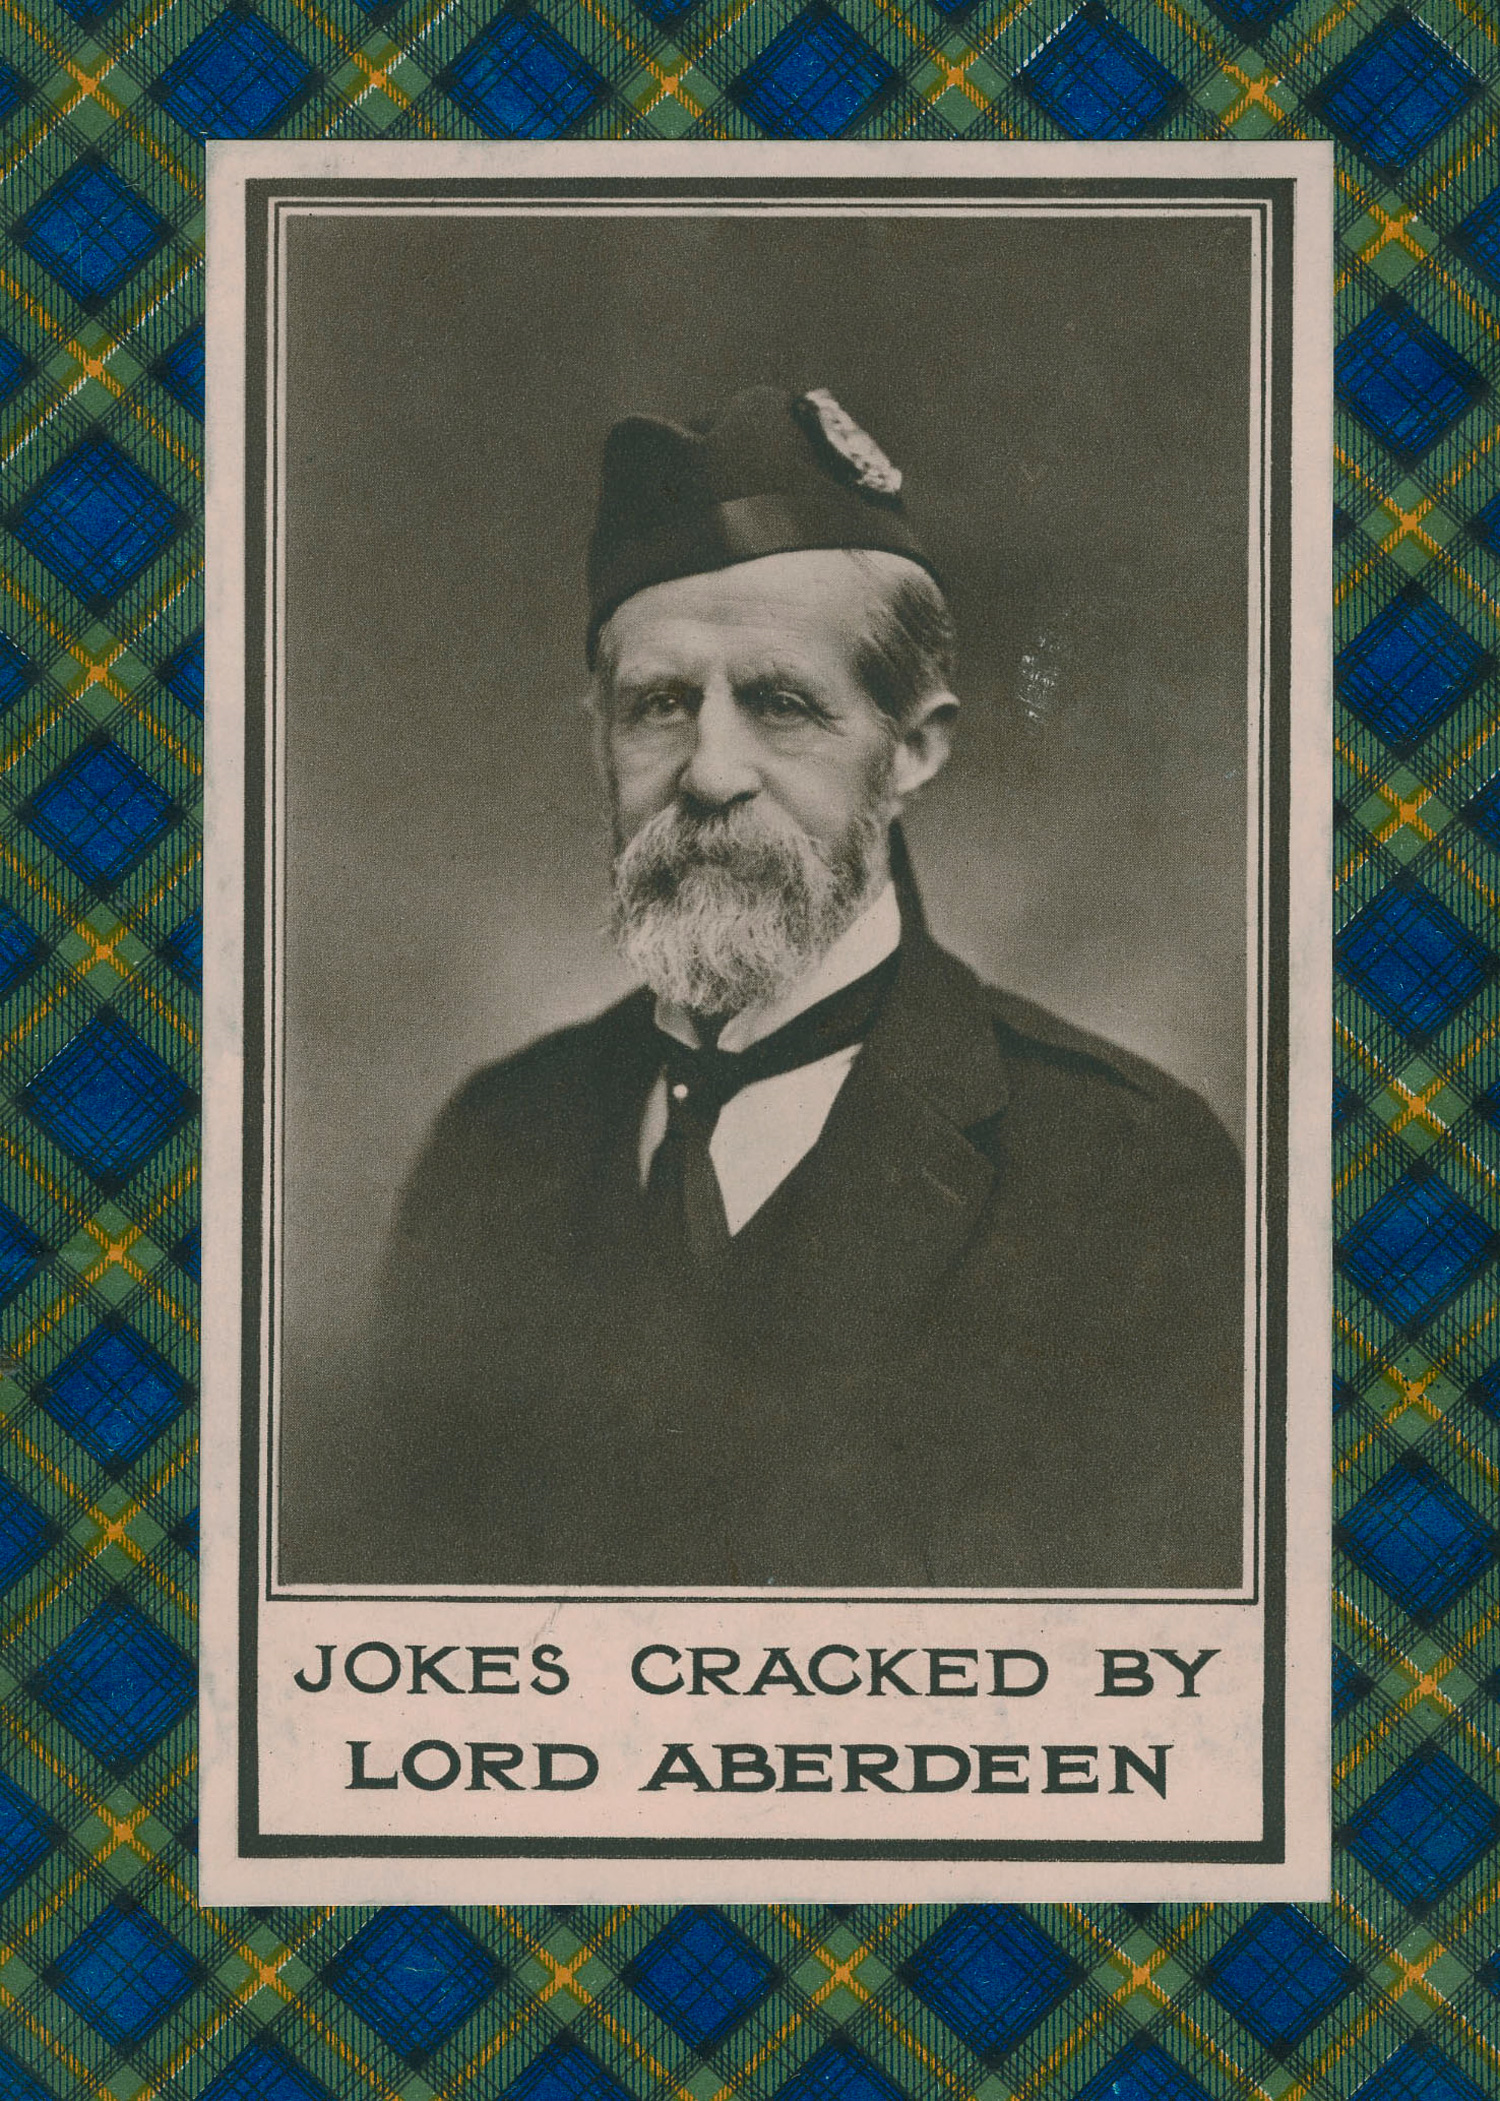 Jokes Cracked By Lord Aberdeen